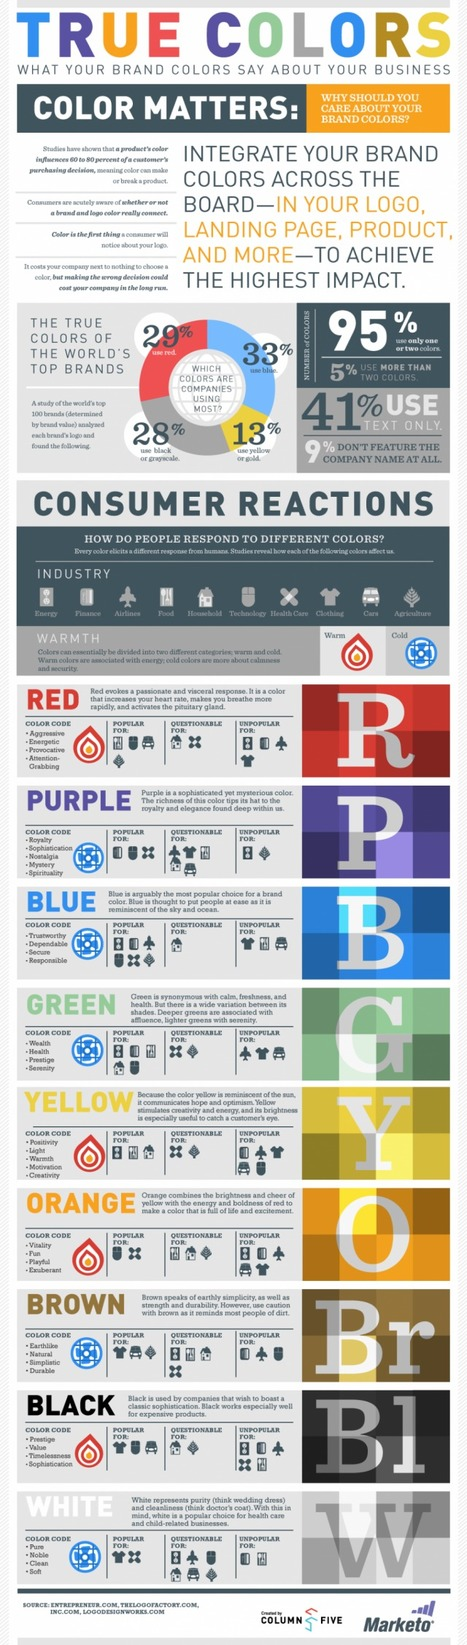 How Your Brand Colors Impact Your Audience | Mediaclub | Scoop.it